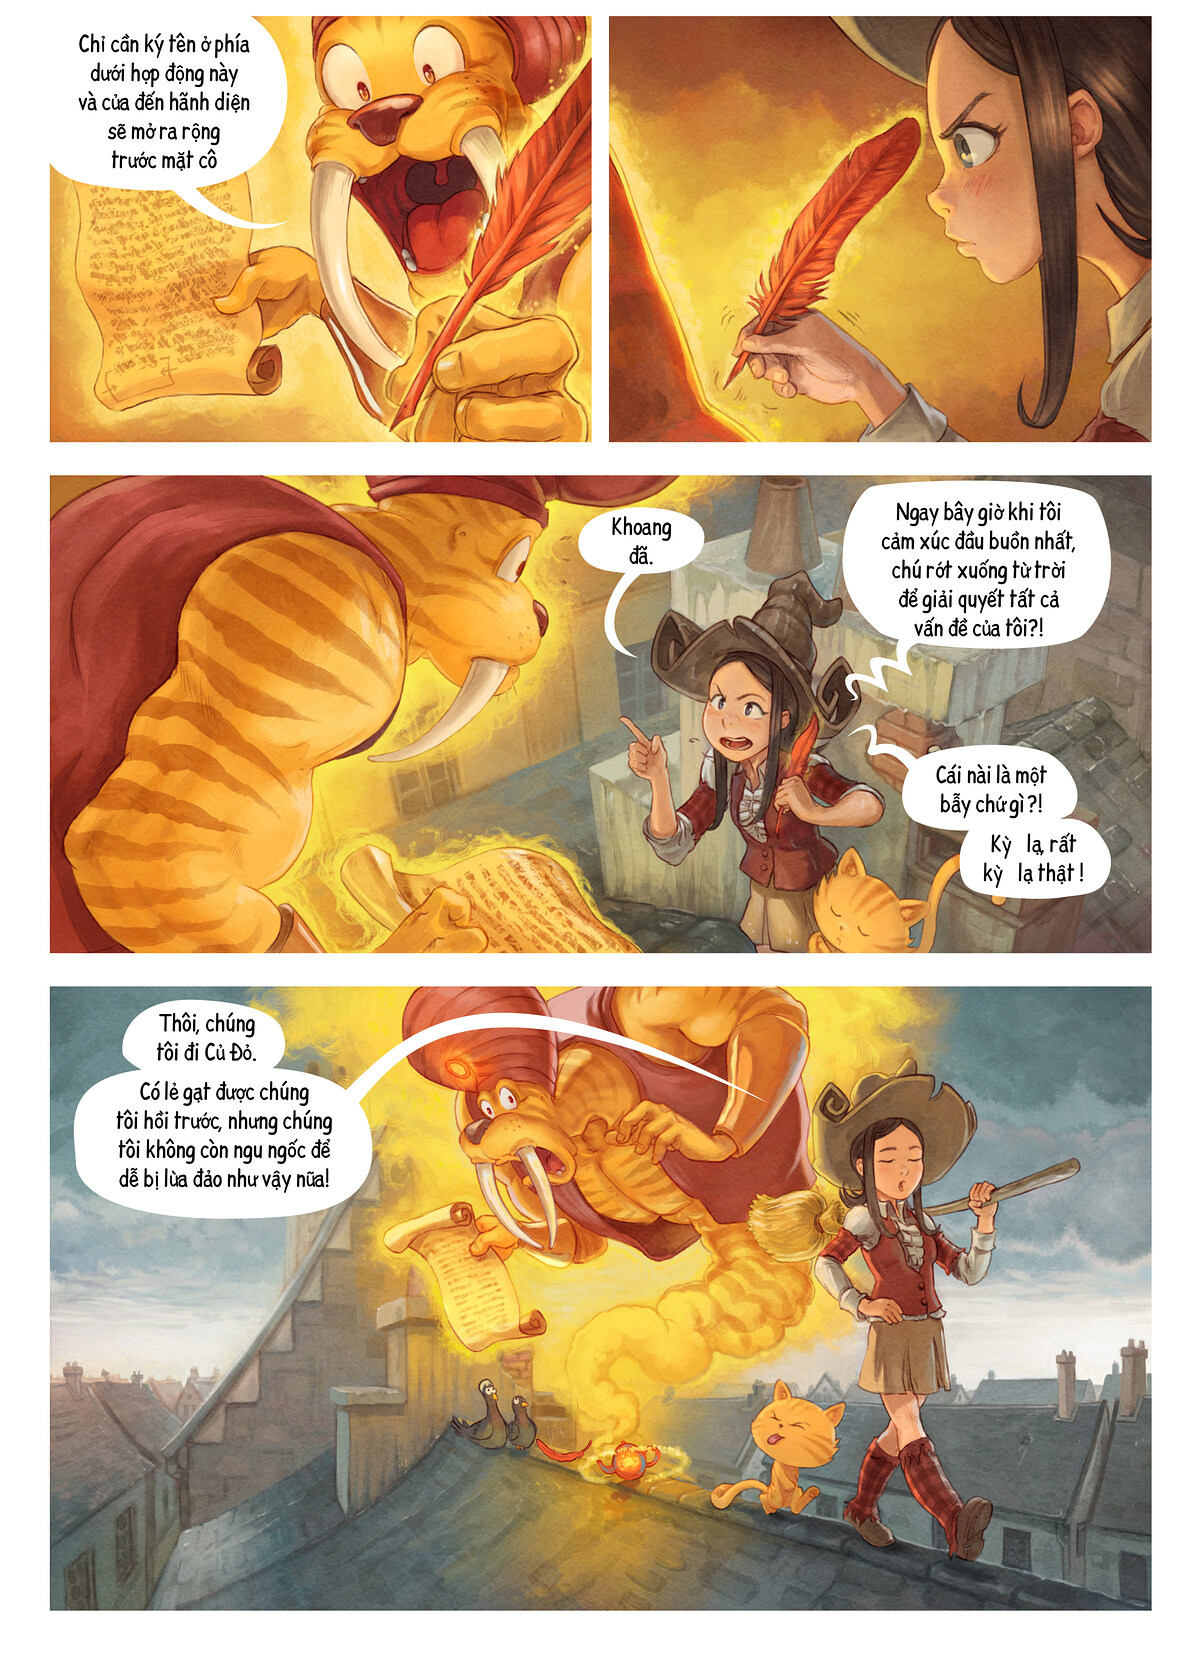 A webcomic page of Pepper&Carrot, Tập 23 [vi], trang 5